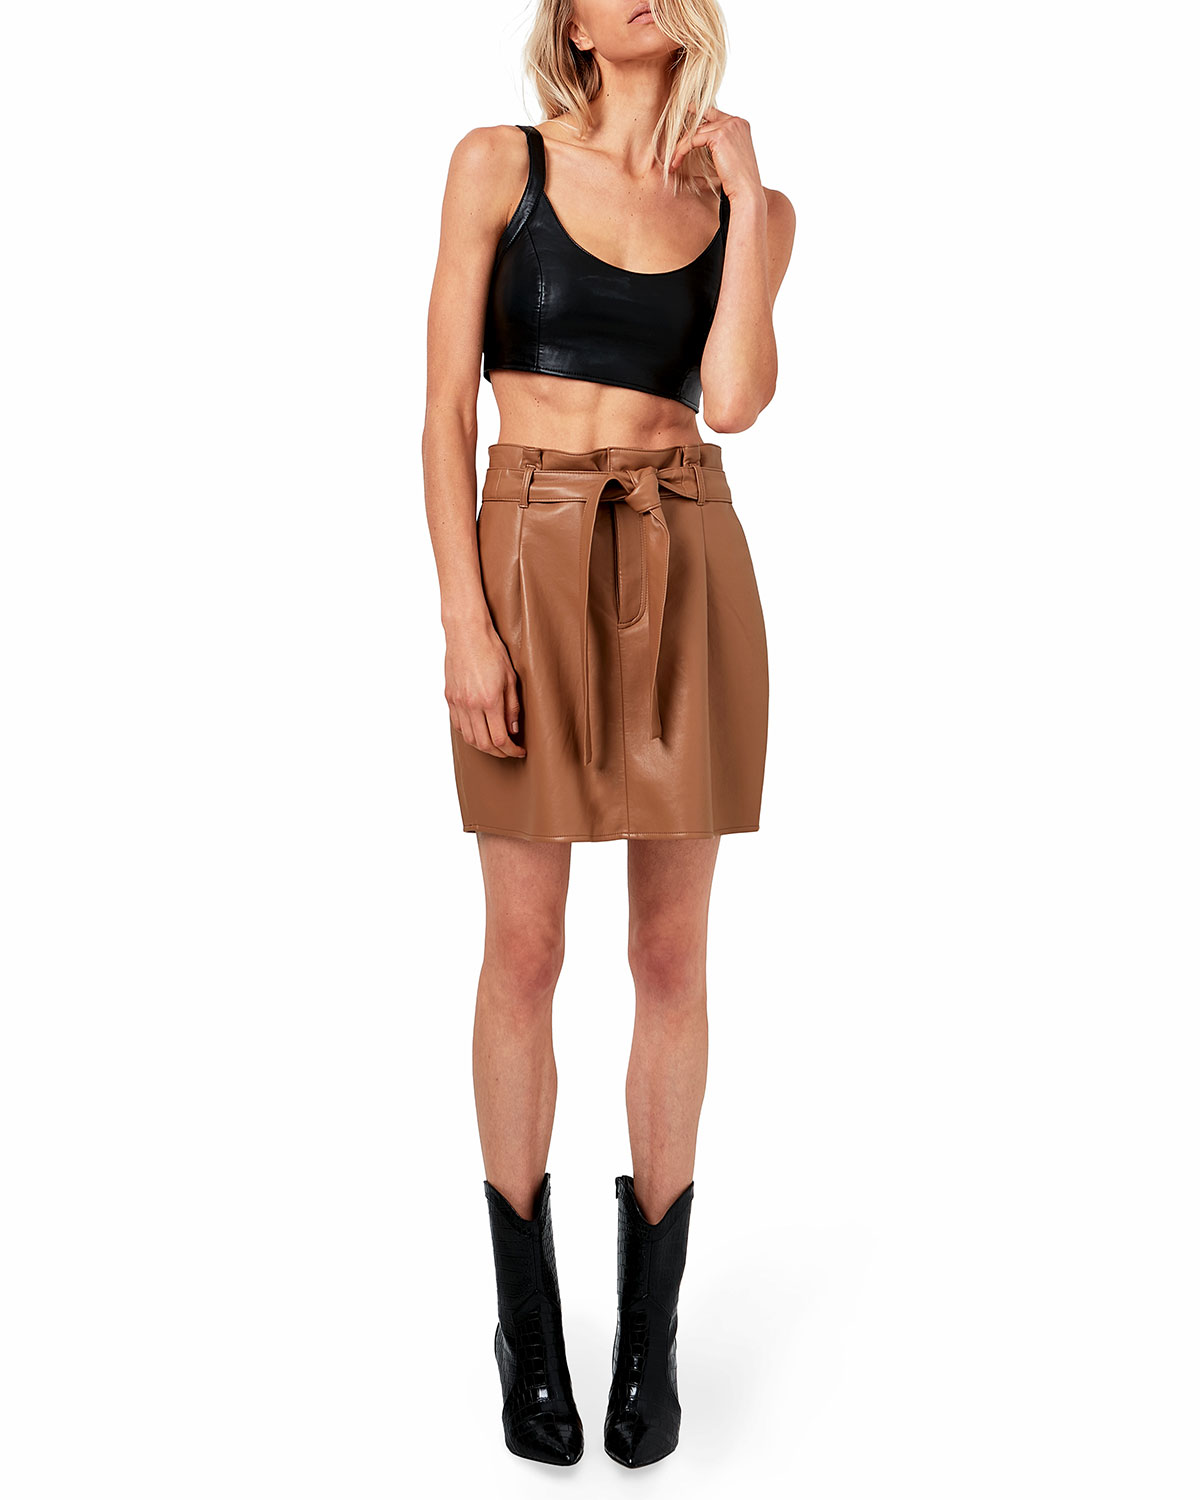 Faye Recycled Leather Skirt